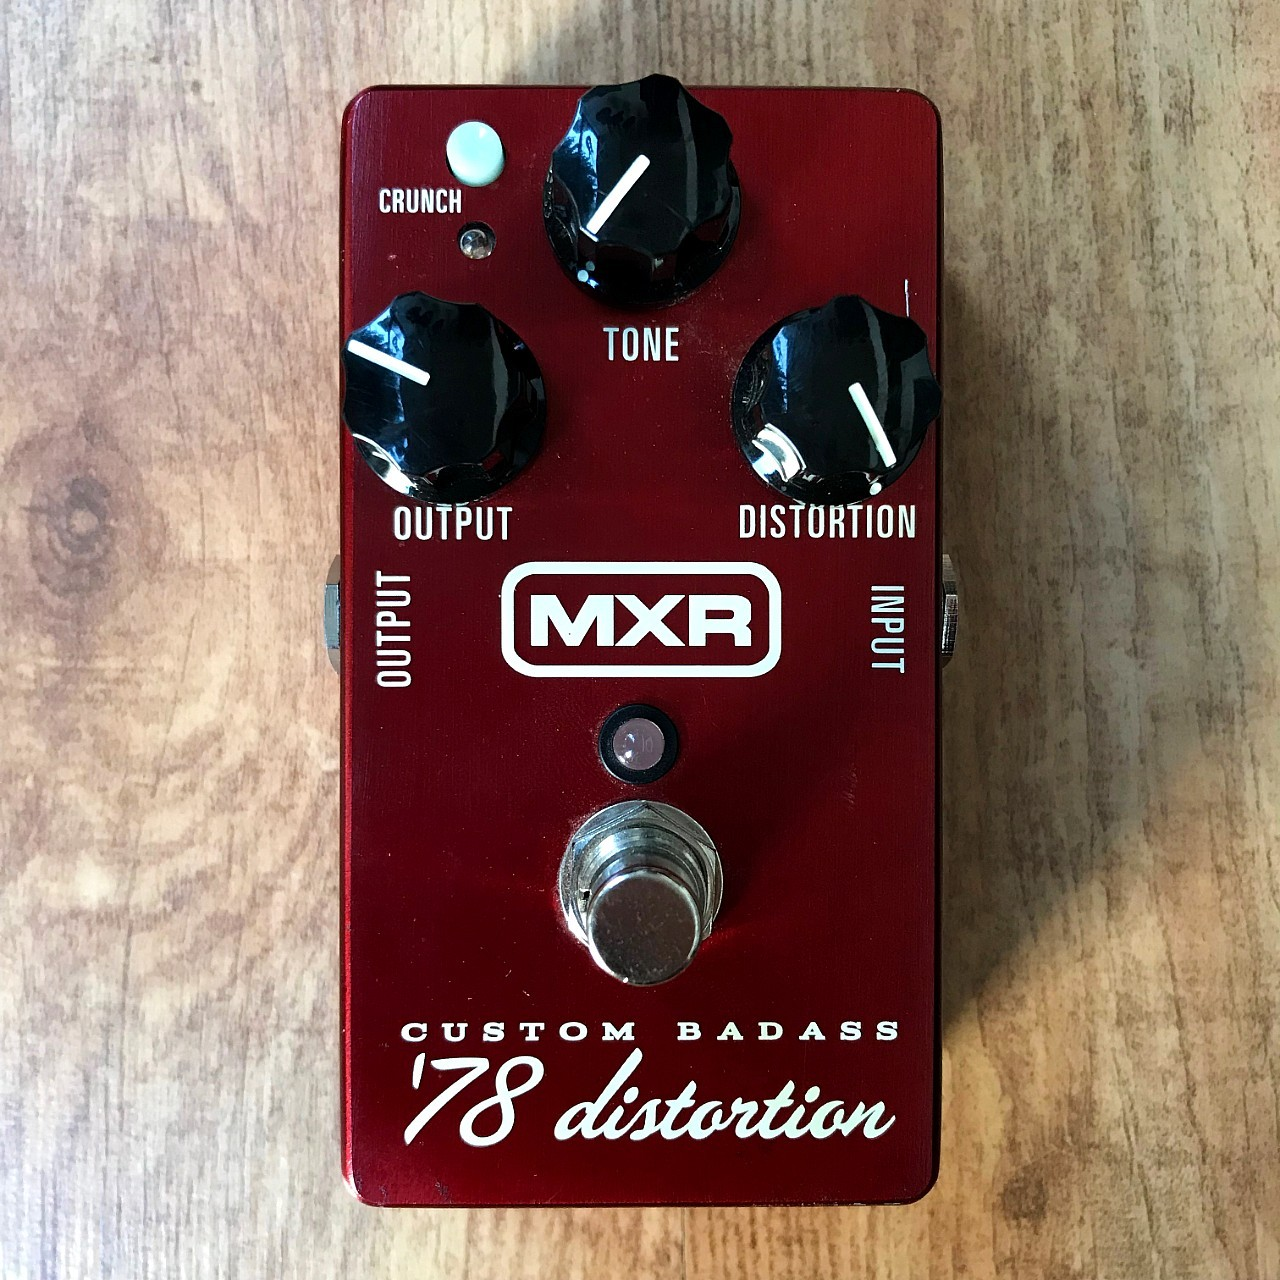 MXR Custom Badass 78 Distortion